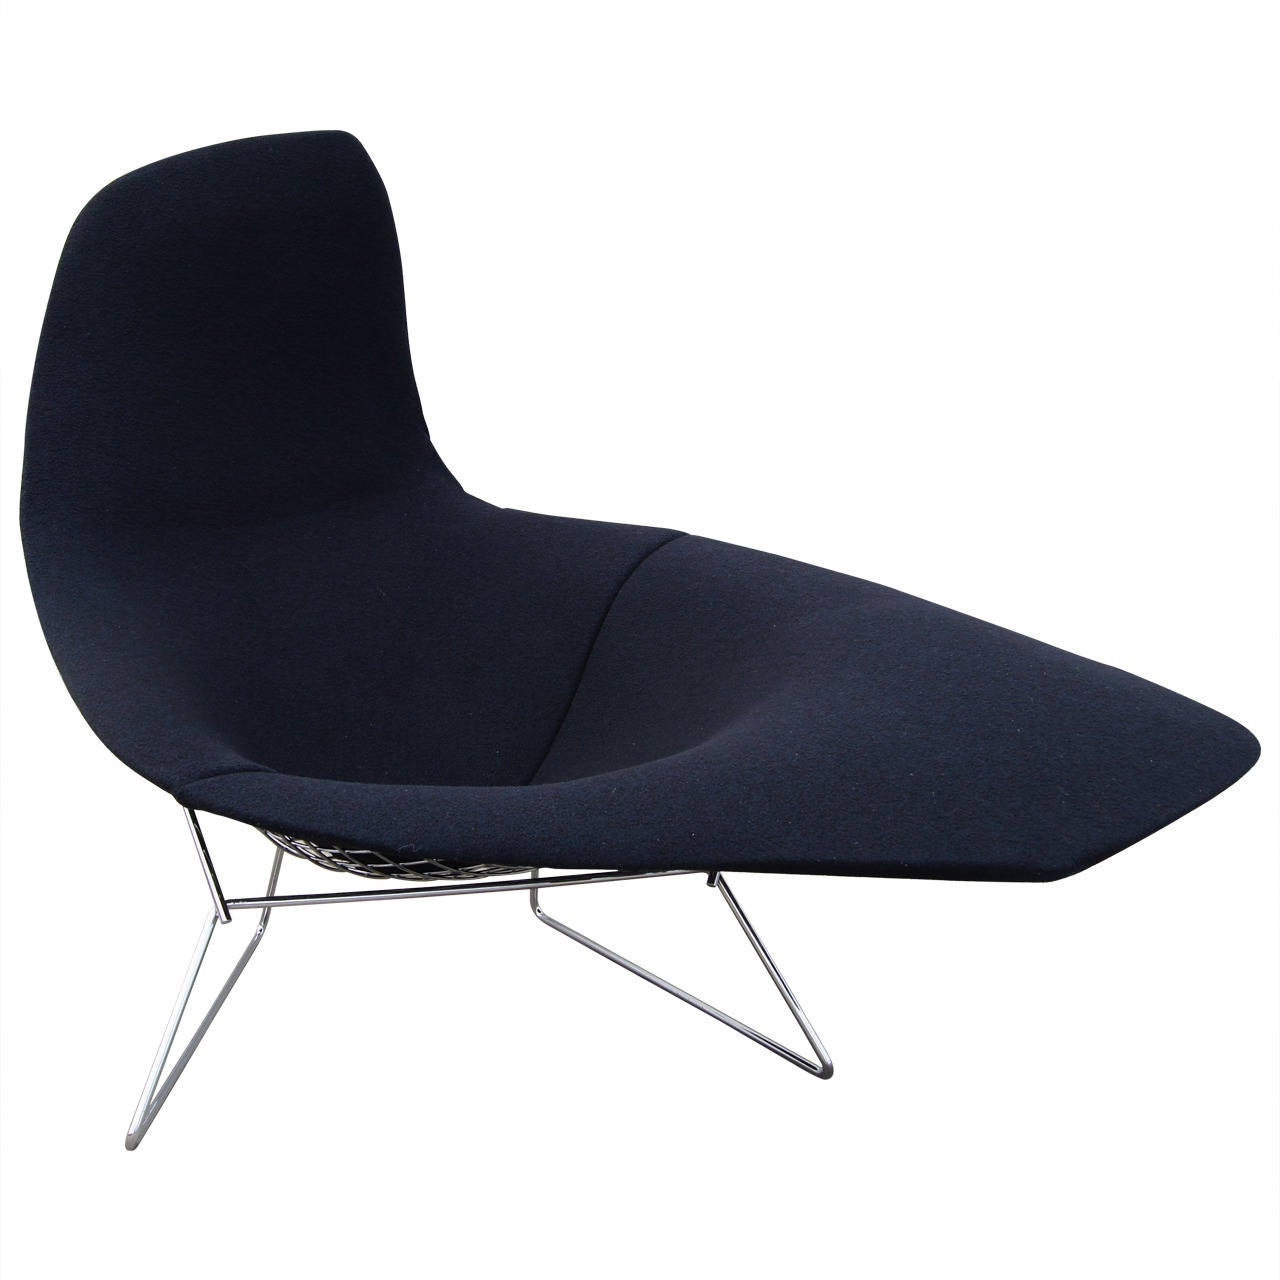 asymmetric lounge by harry bertoia for knoll at 1stdibs. Black Bedroom Furniture Sets. Home Design Ideas